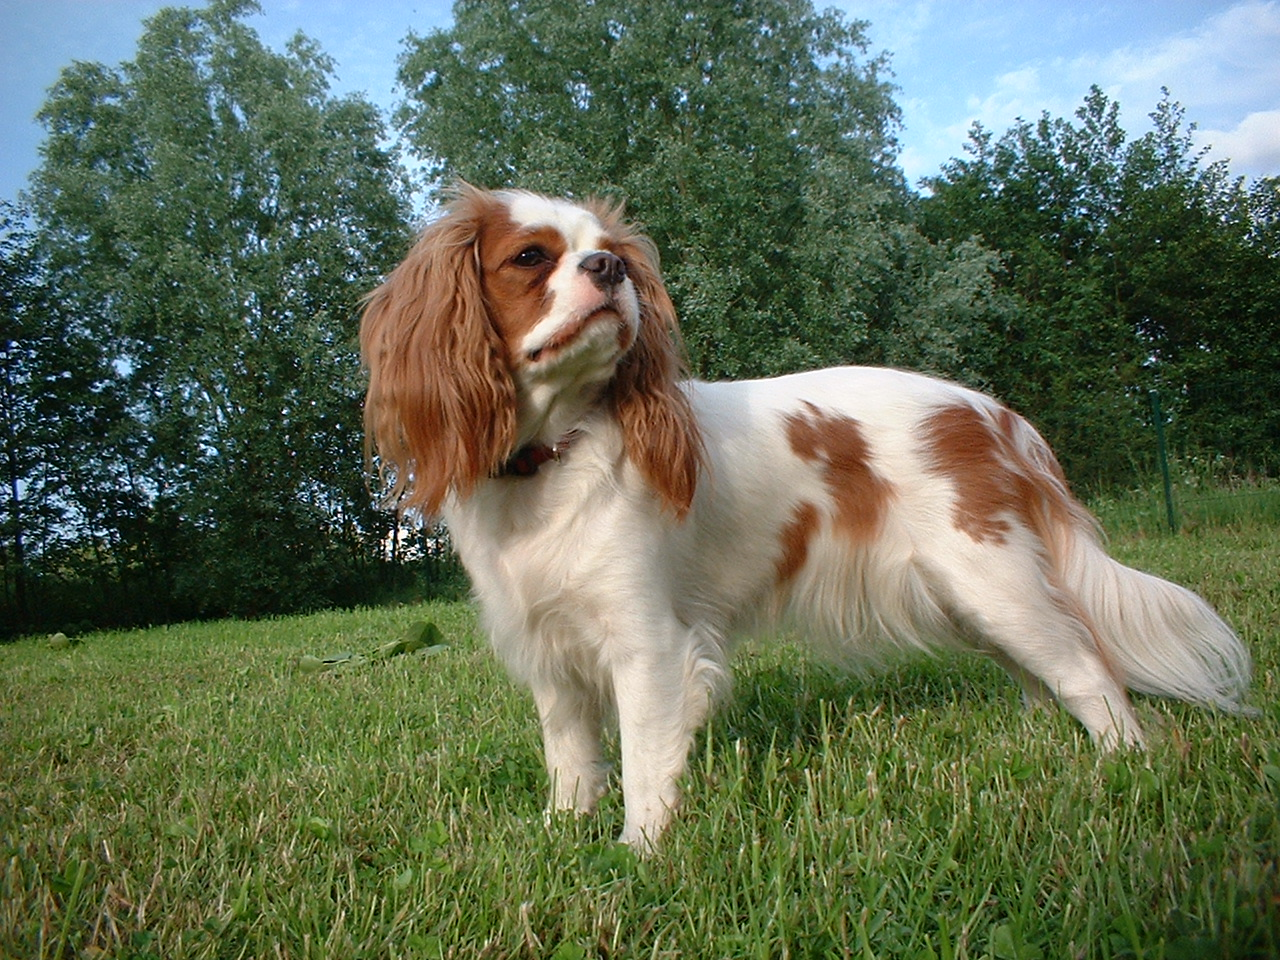 King Charles Spaniel on the grass wallpaper